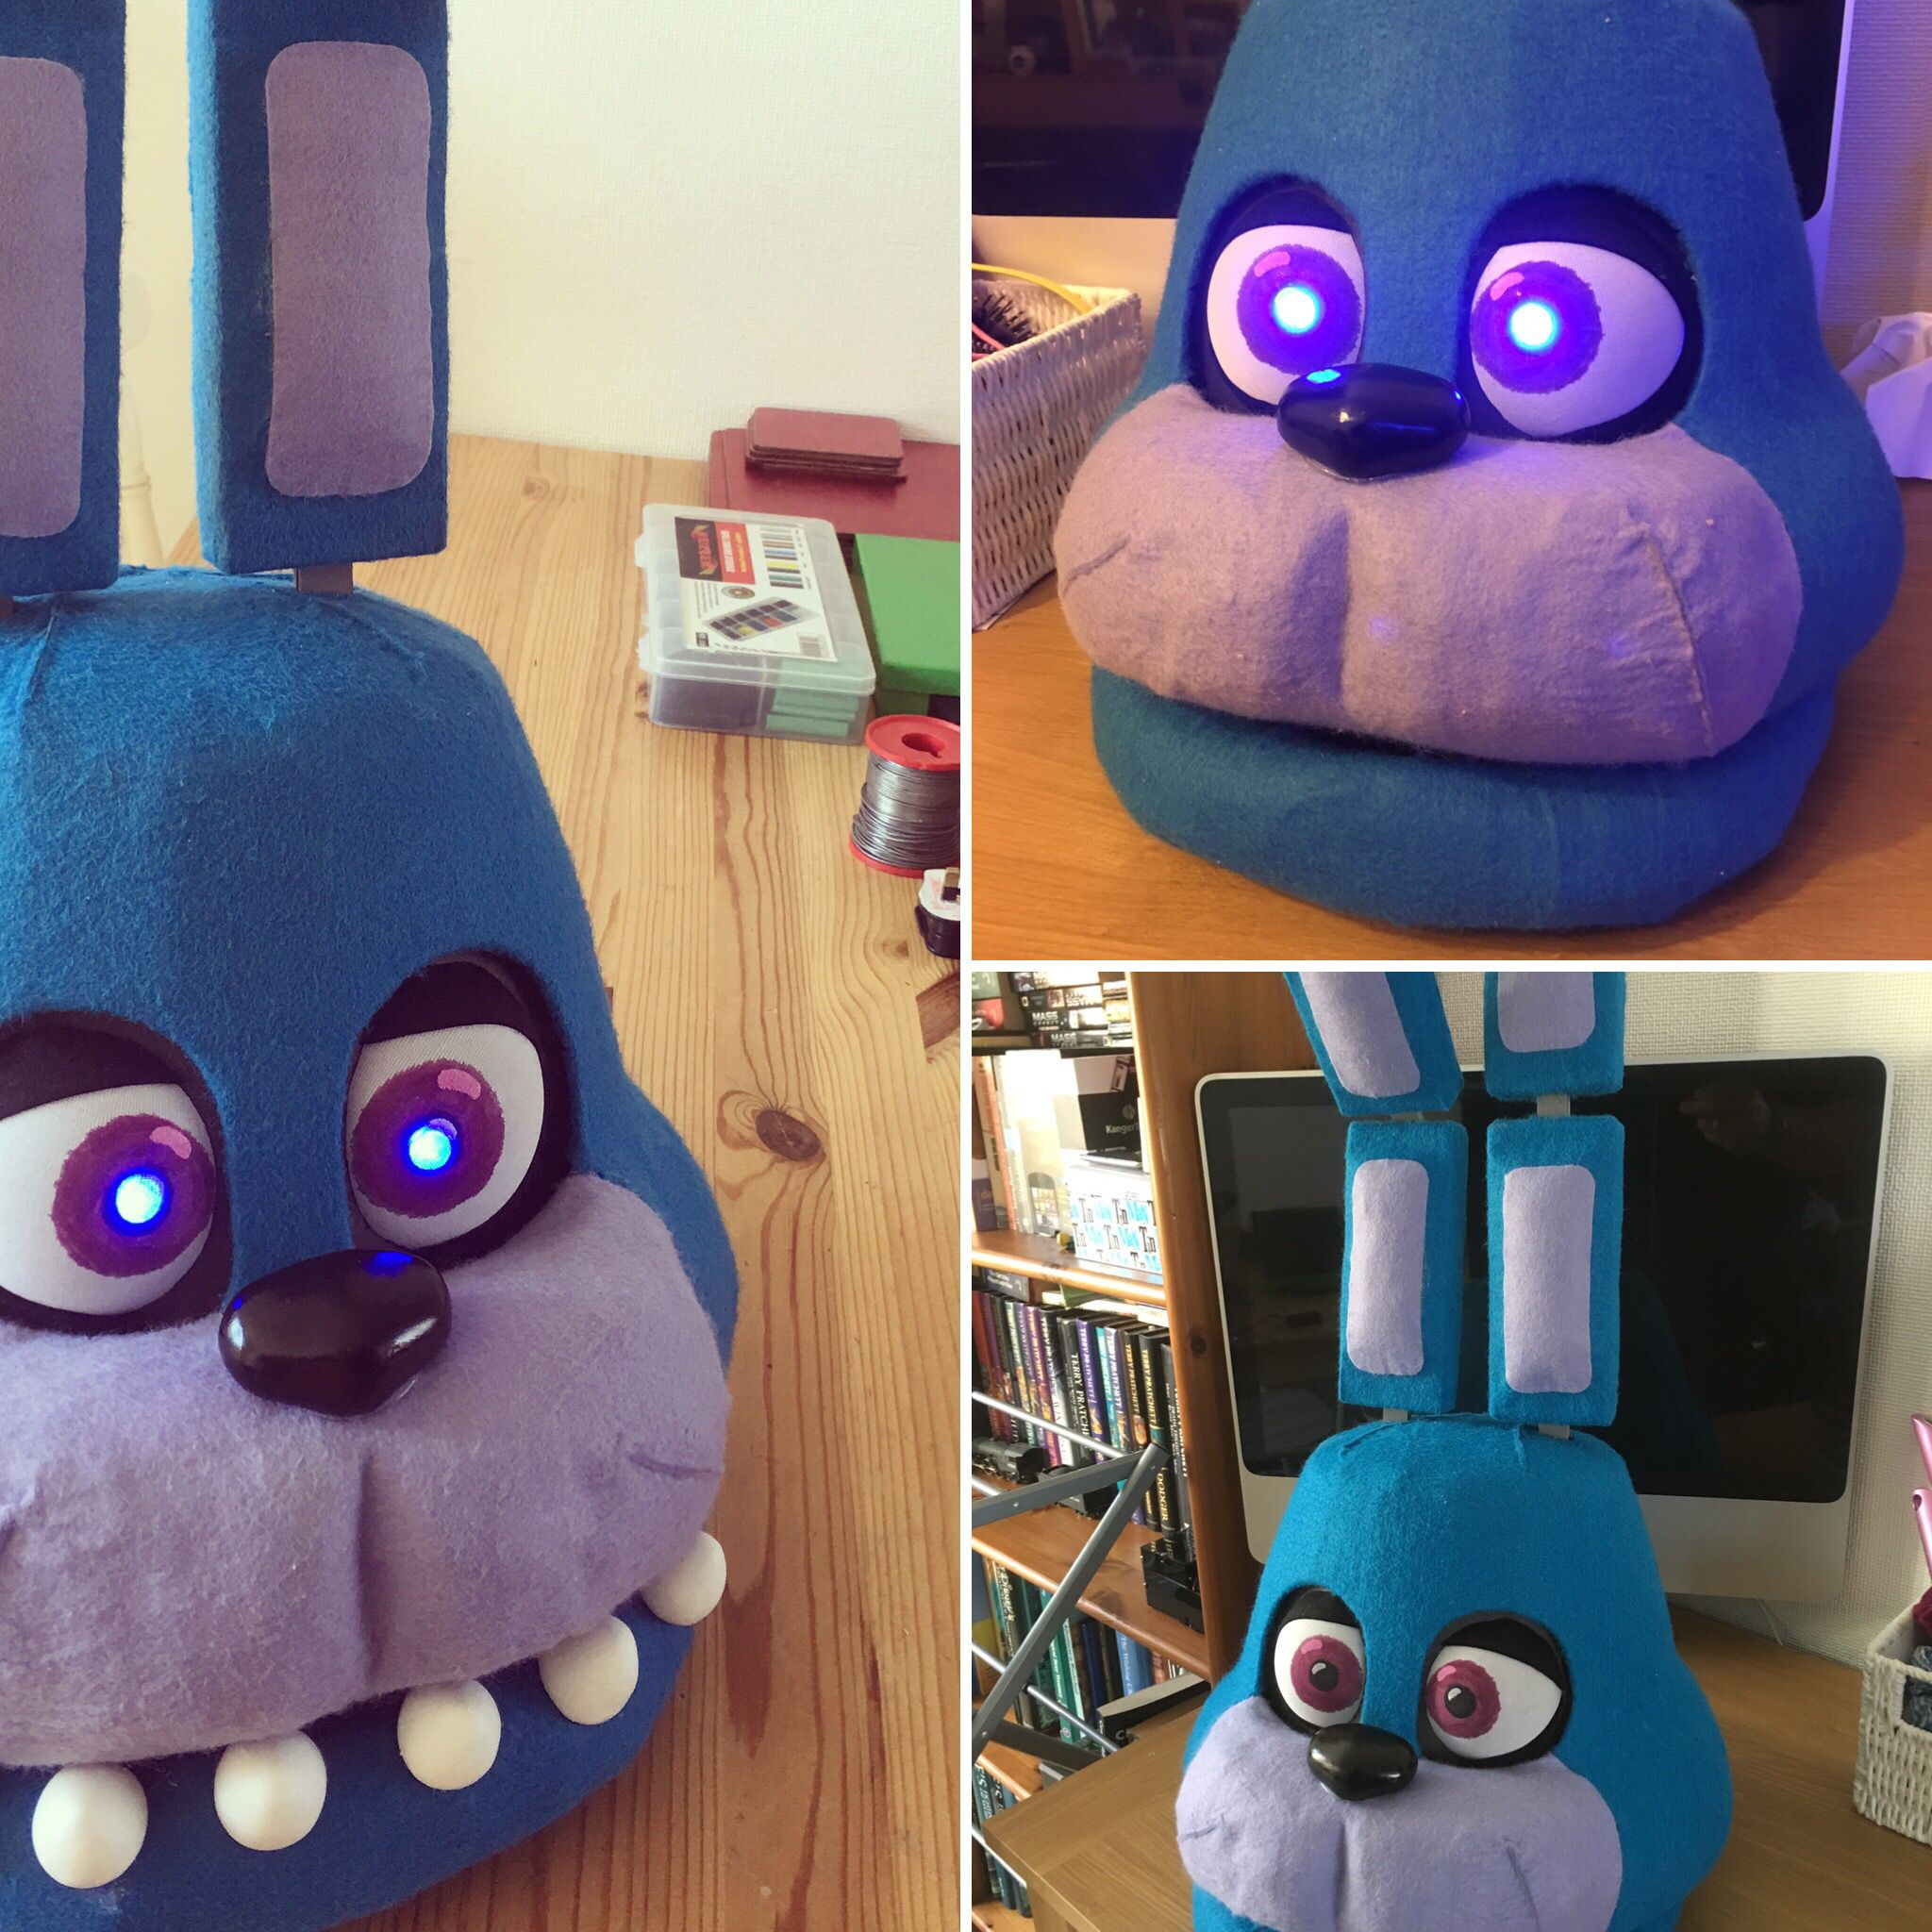 Fnaf bonnie costume for sale - Bonnie Mask From Five Nights At Freddie S Eyes Light Up And Jaw Opens And Closes